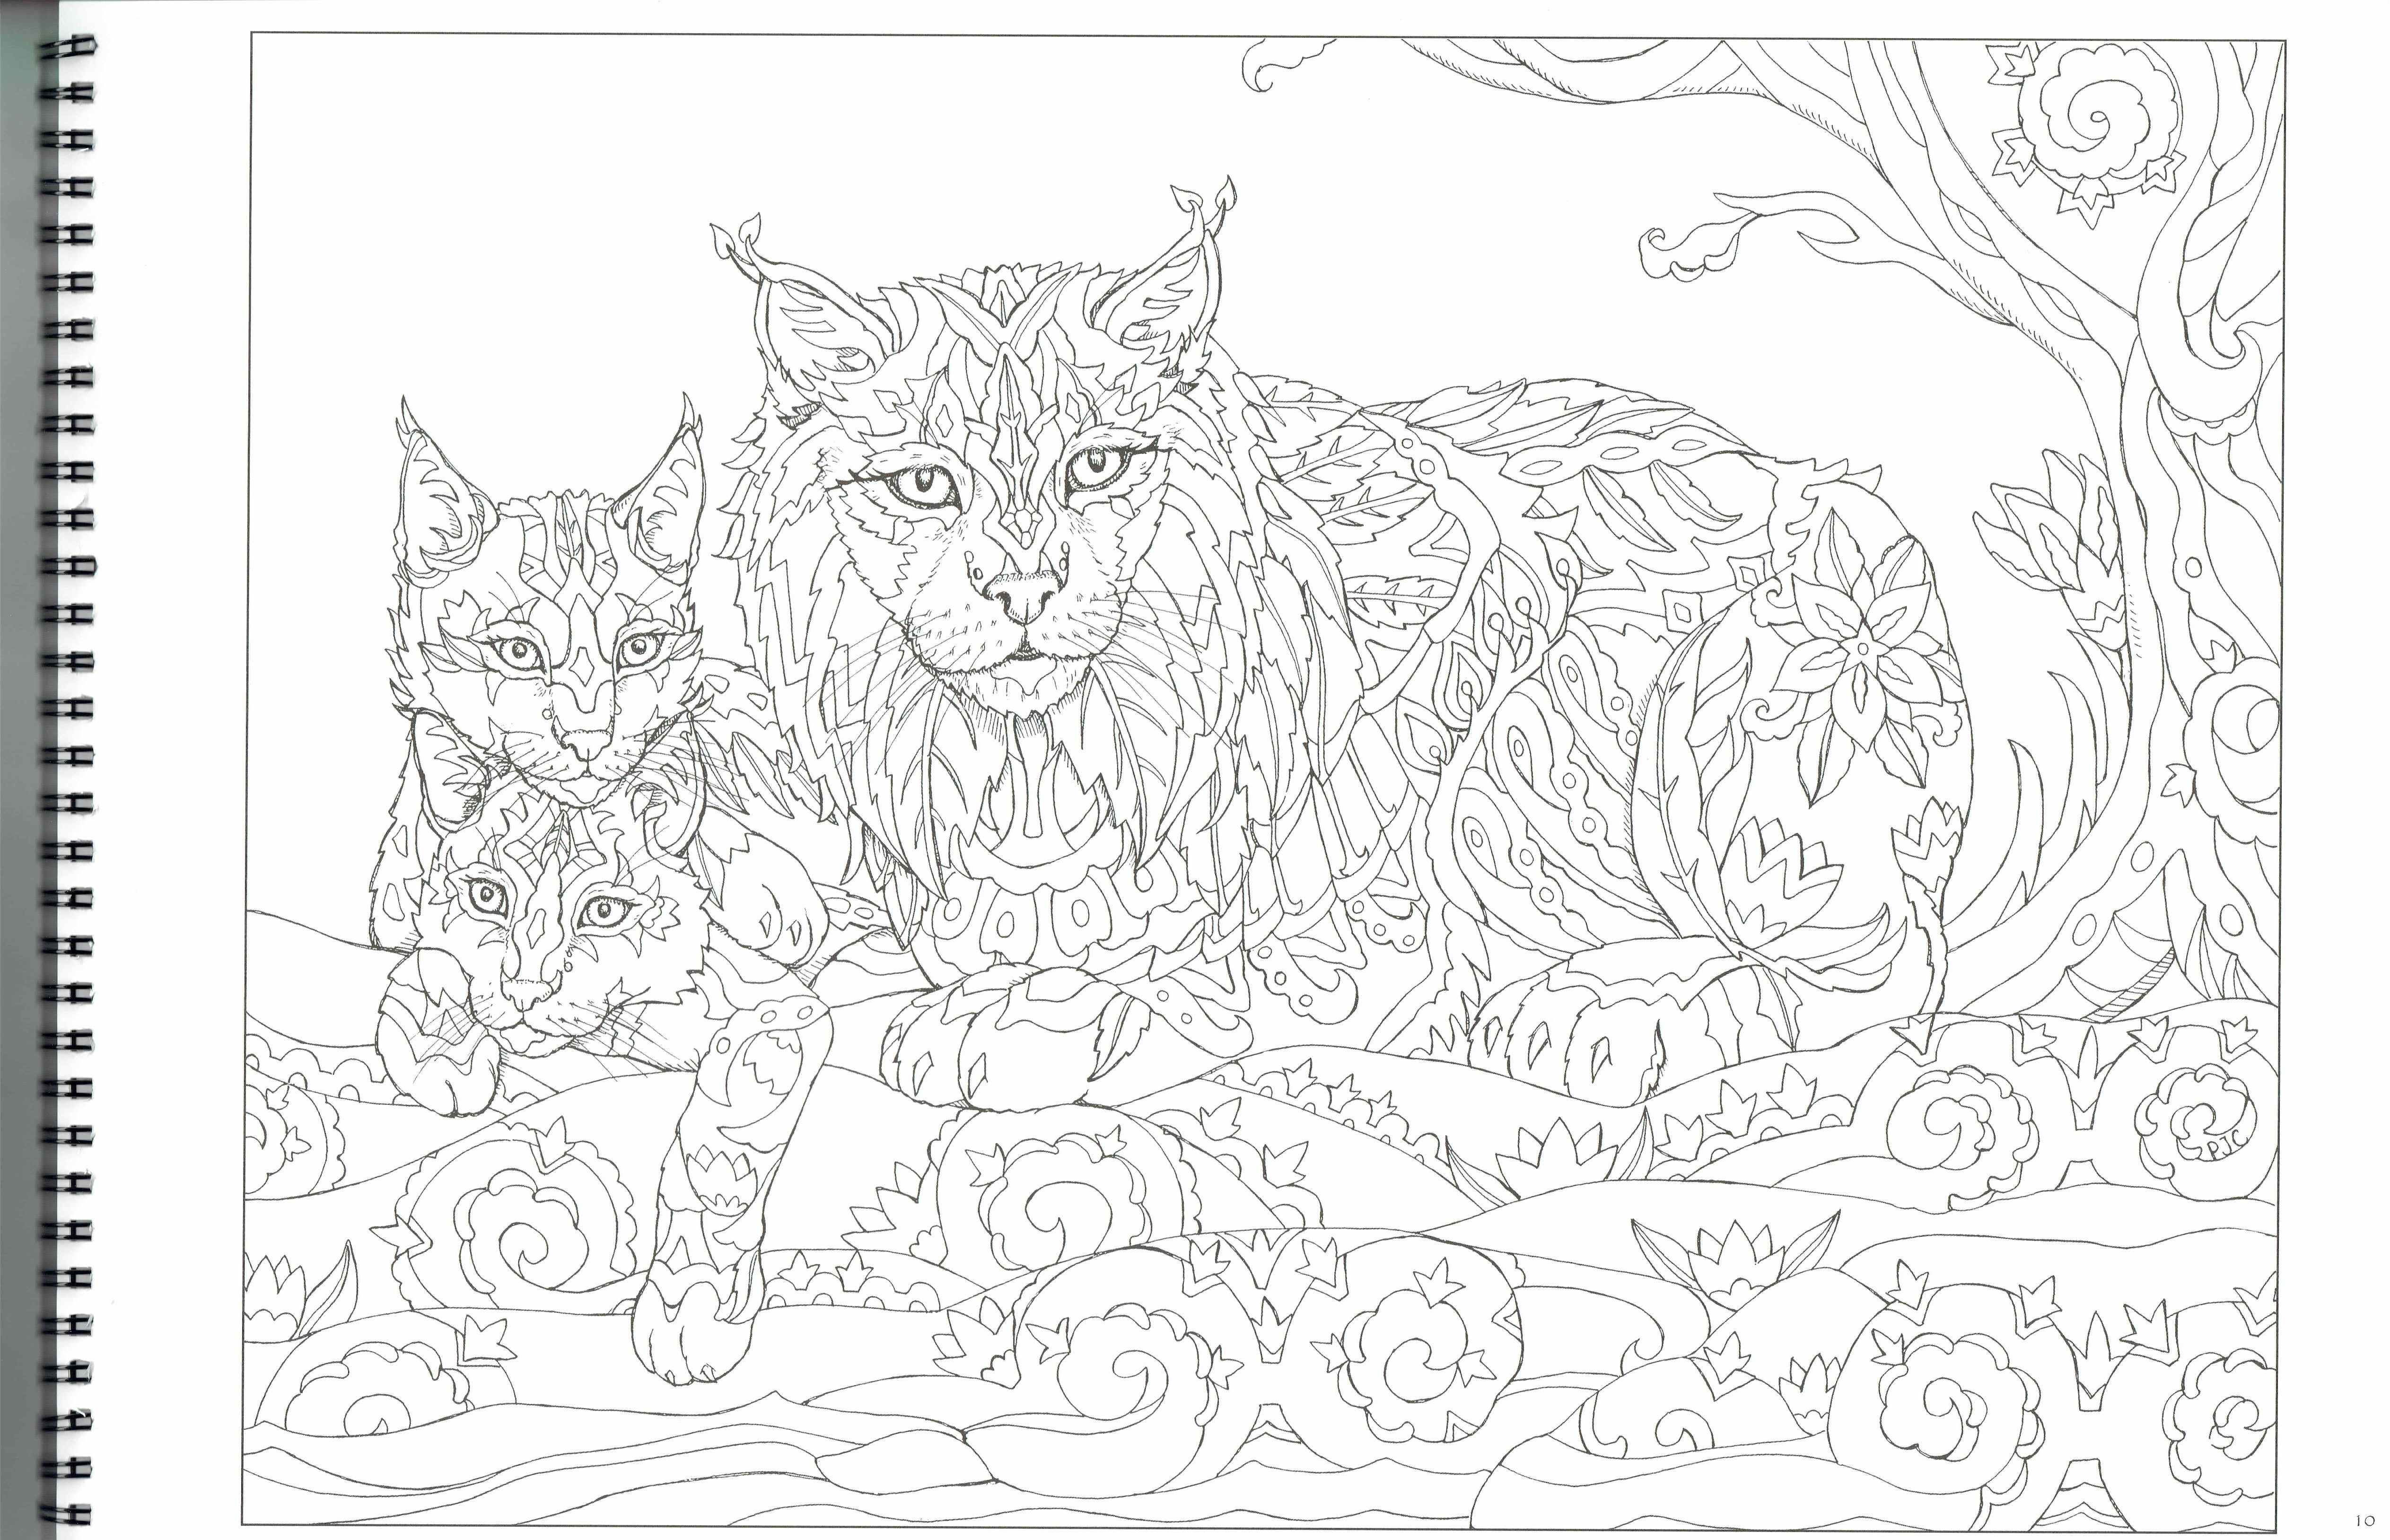 this will print on 11x17 just as nice as 8.5x11. lynx